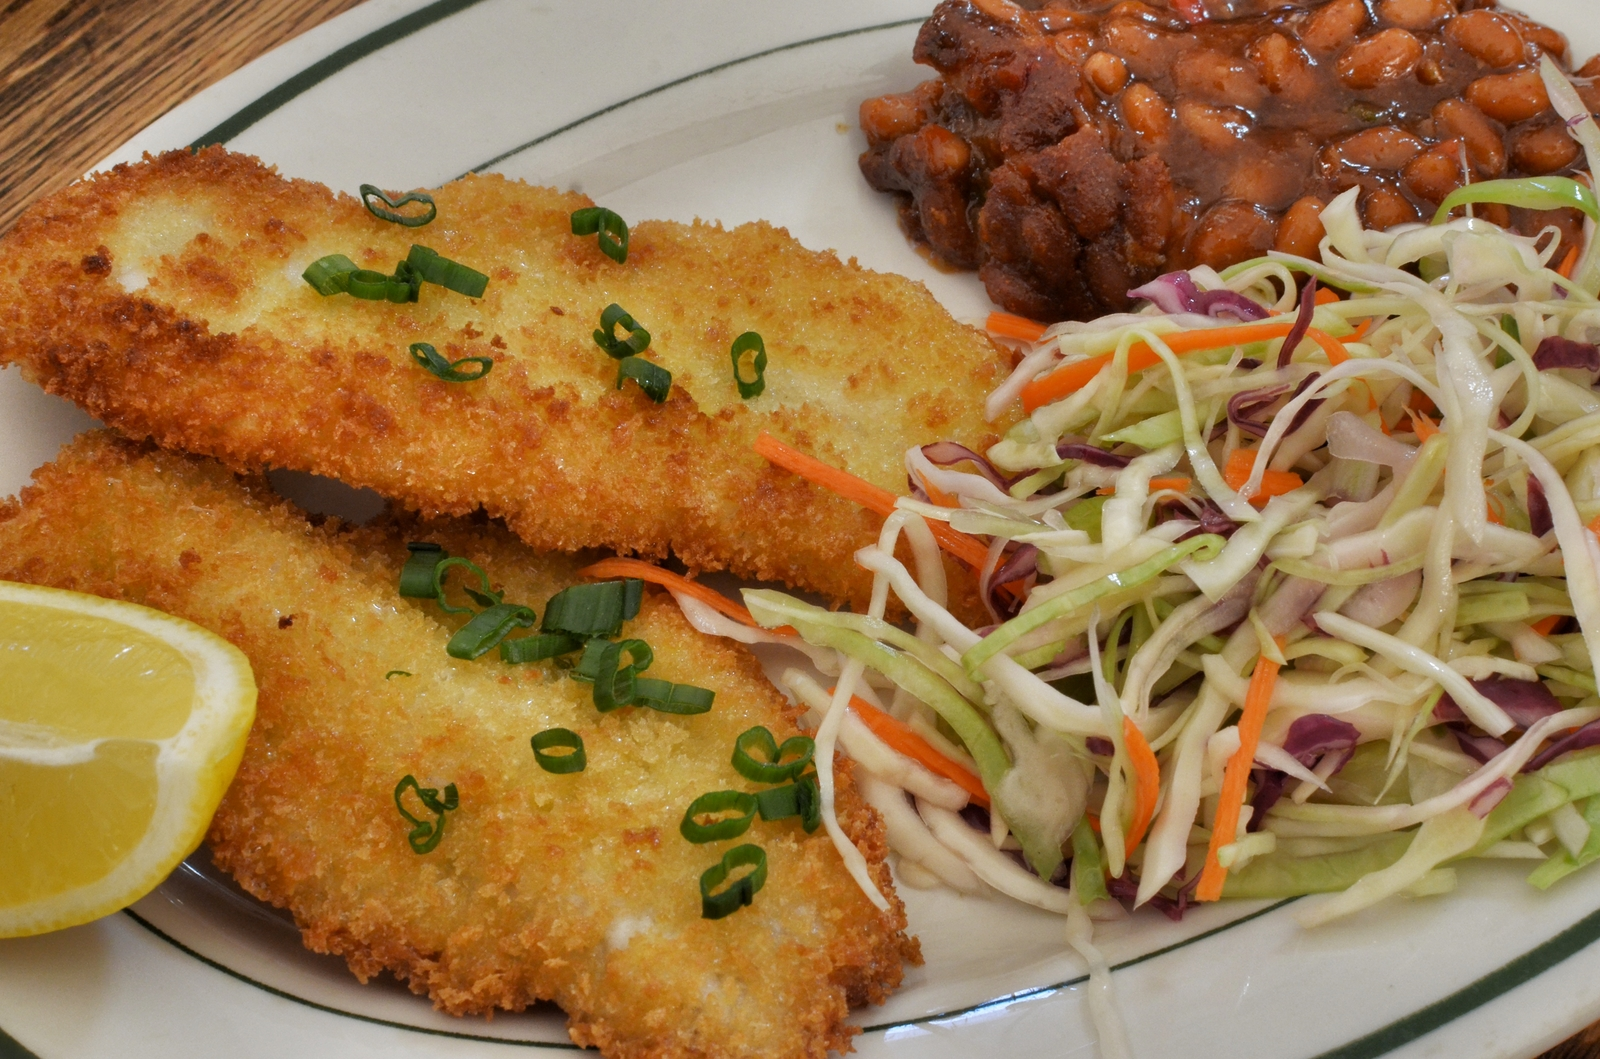 Fried fish fillets largemouth black bass what 39 s 4 for Fried fish fillet recipes